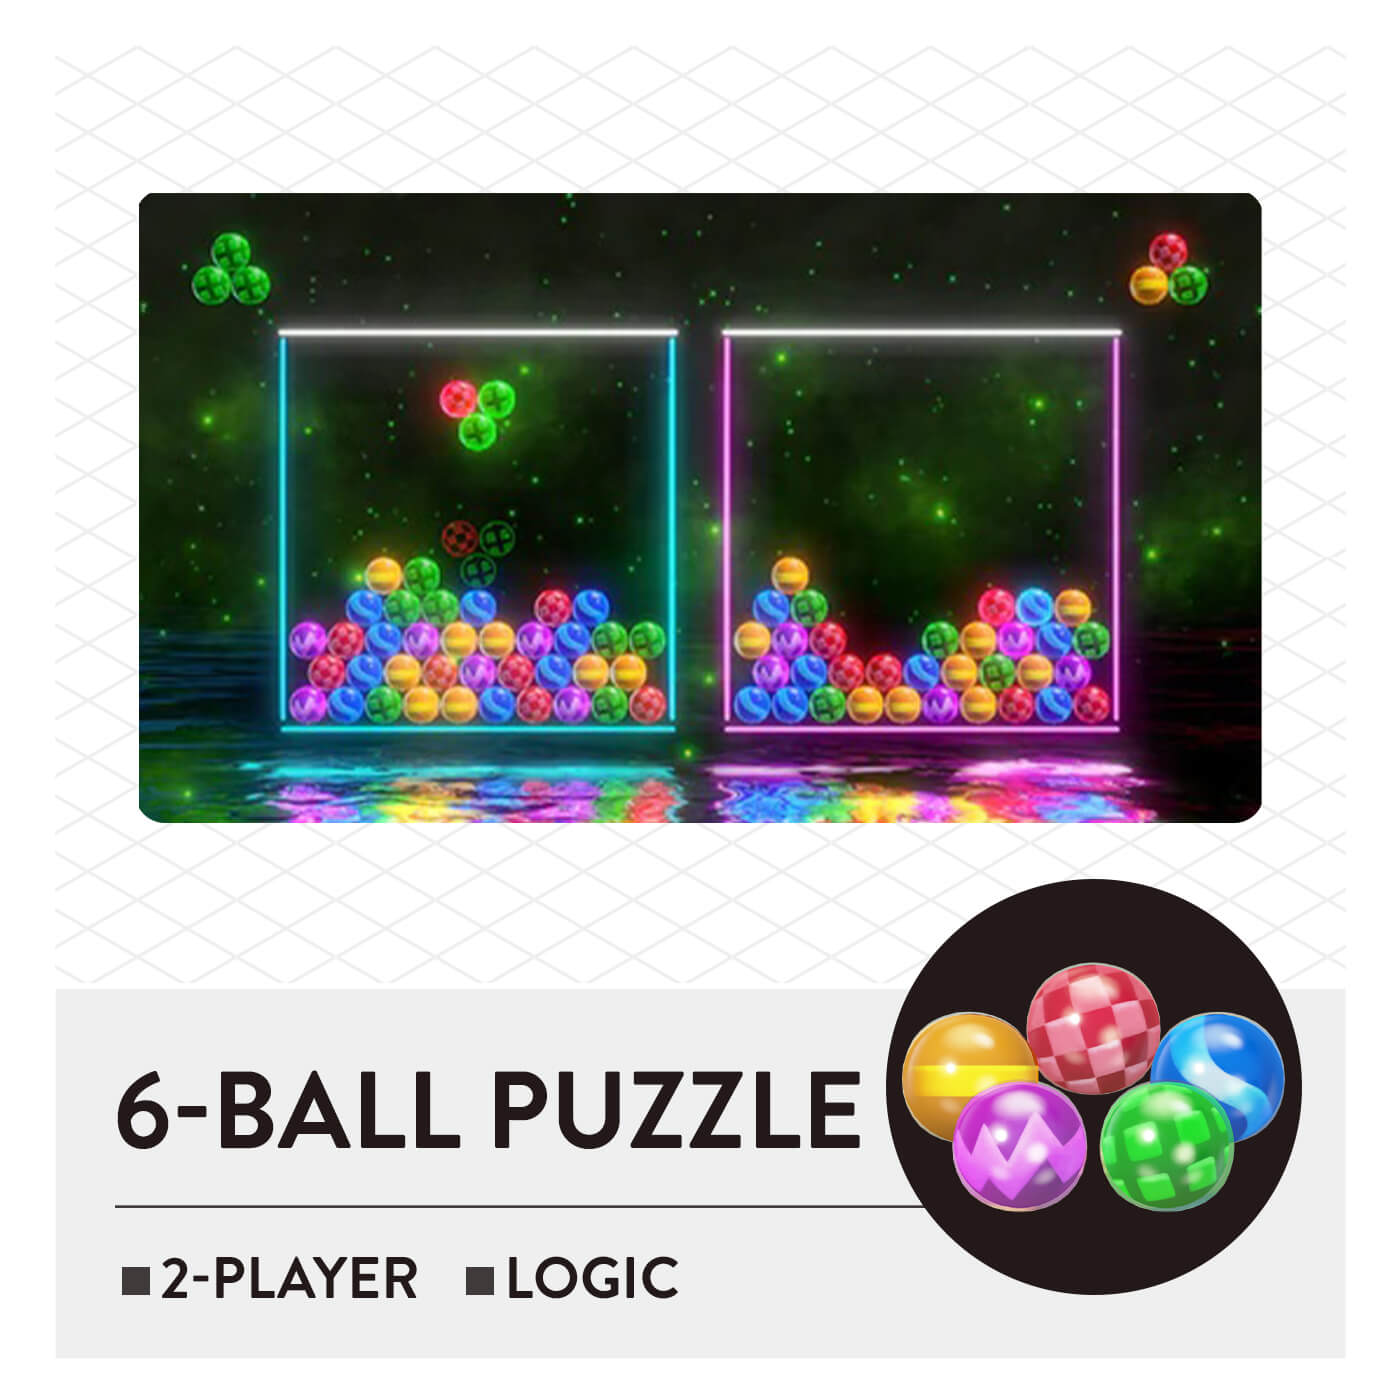 51 Worldwide Games - 6-Ball Puzzle